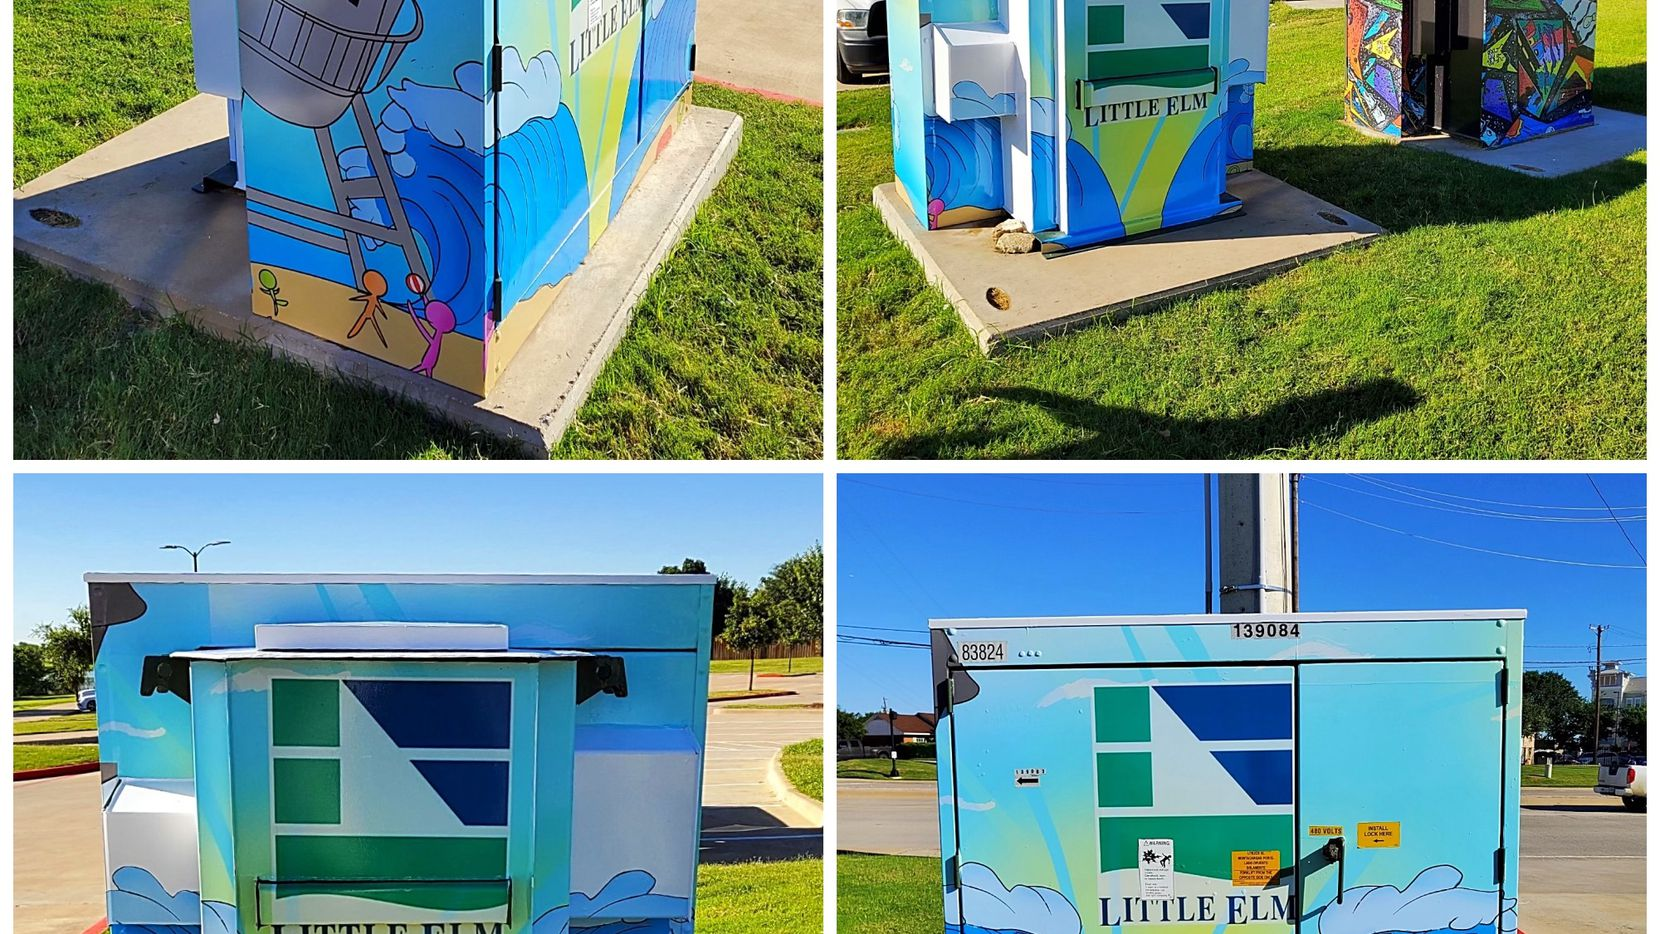 The town of Little Elm has partnered with the local Signarama to wrap public utility boxes and bring more color to the town.